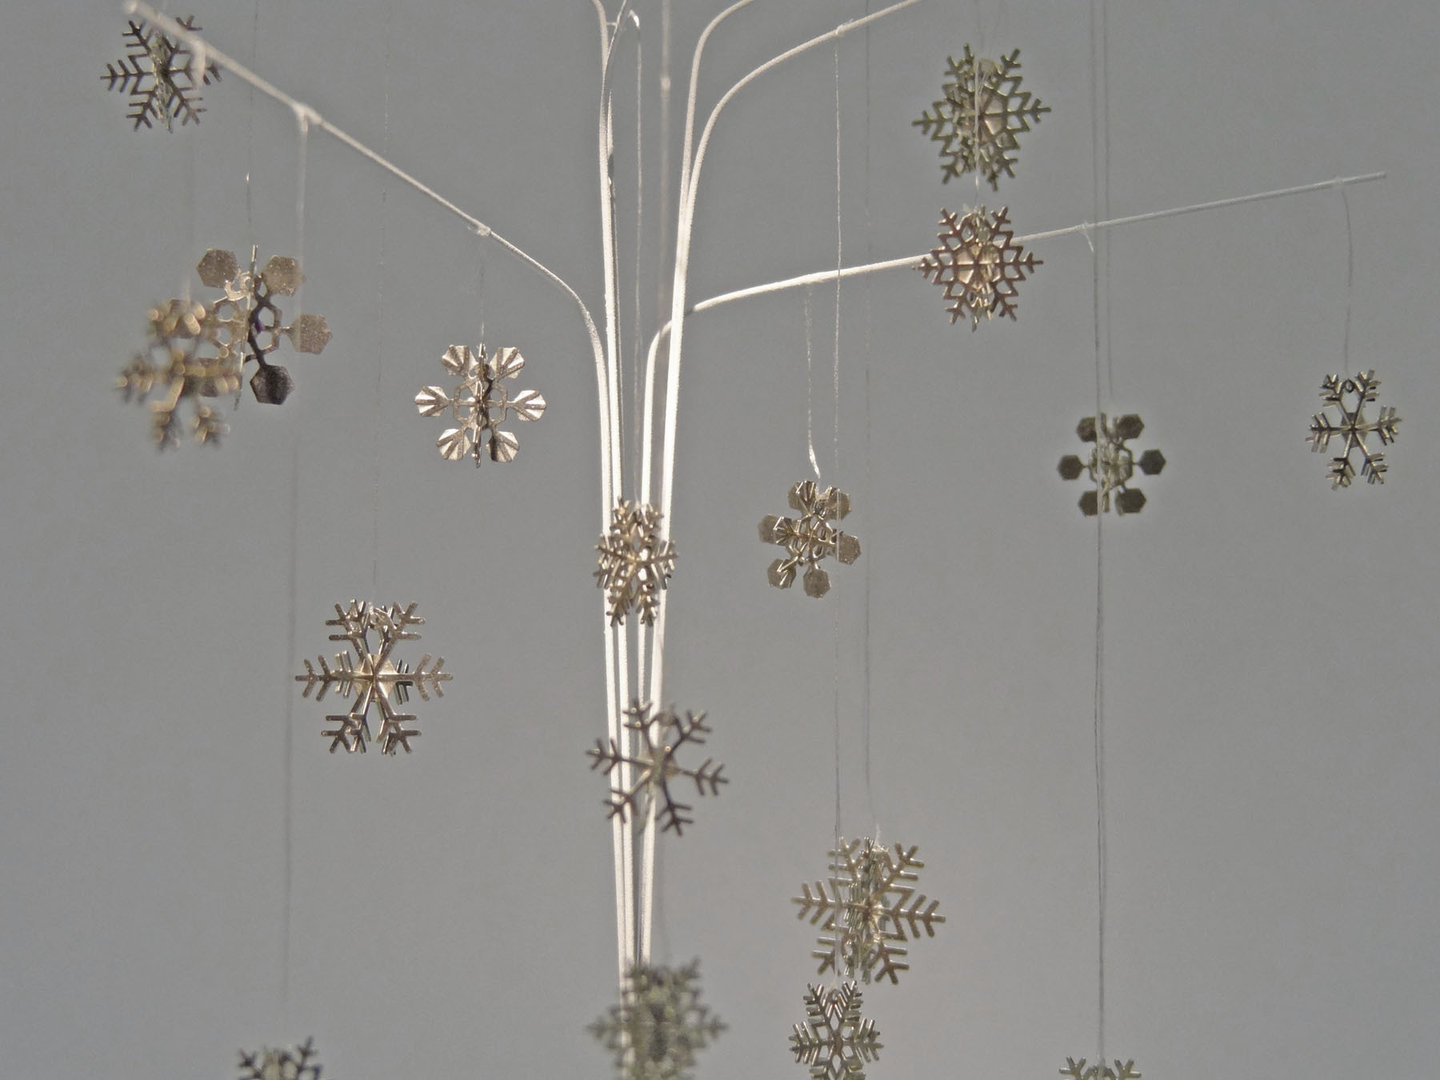 T10 Snowflakes Decorations